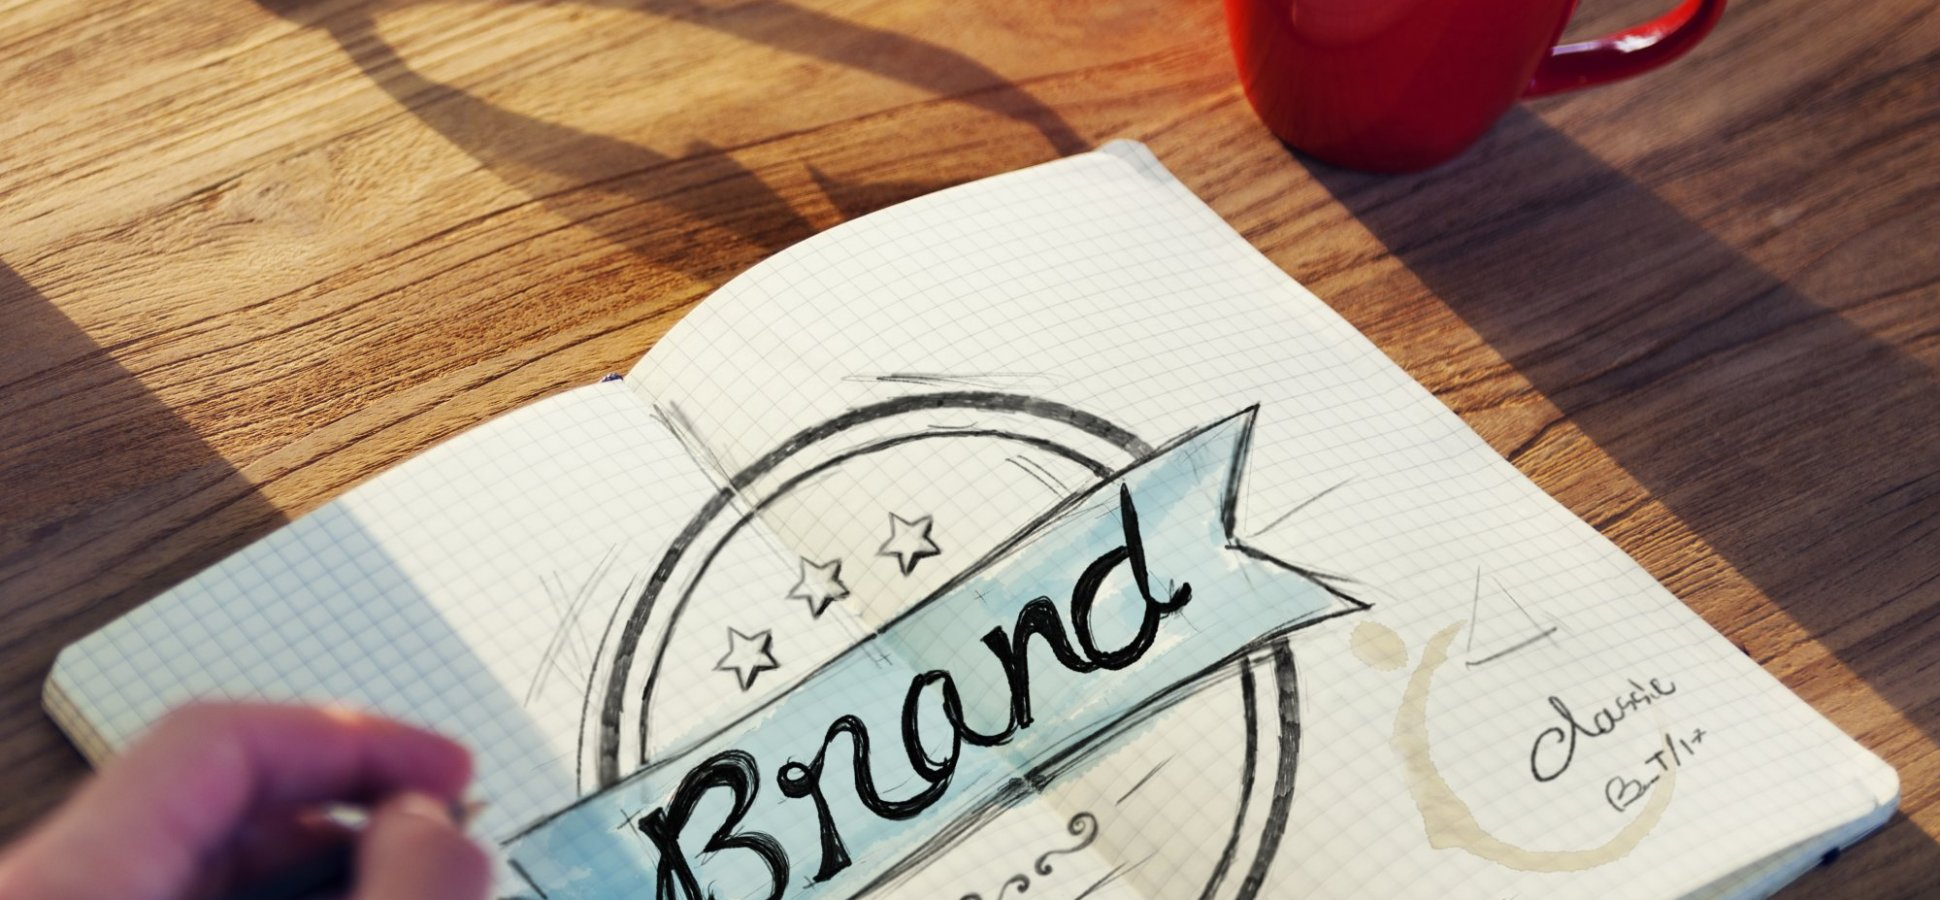 Want a Leading Brand? You Must Have These 6 Key Ingredients